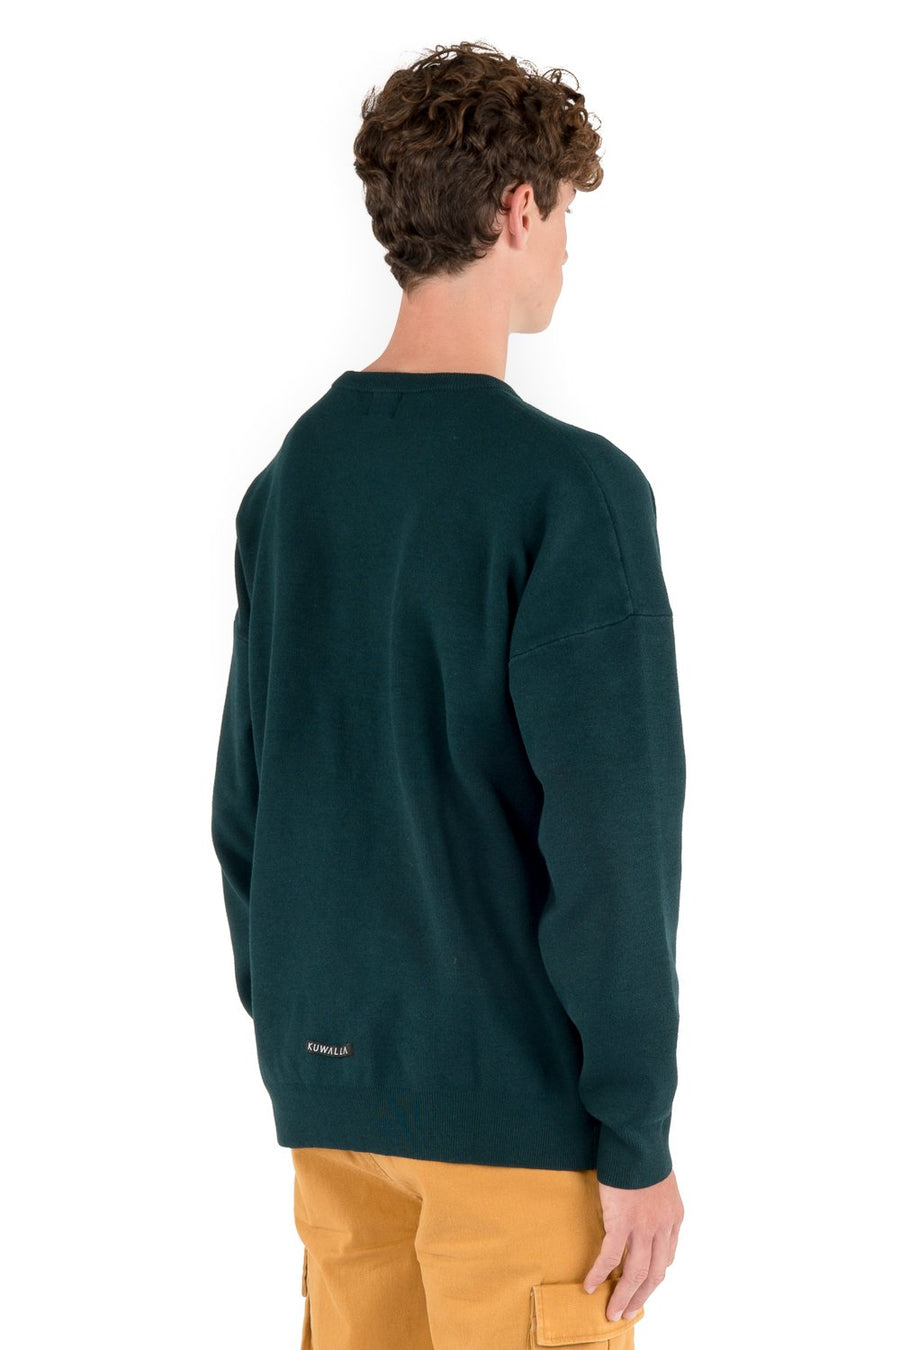 kuwalla tee stretch knitted crew spruce